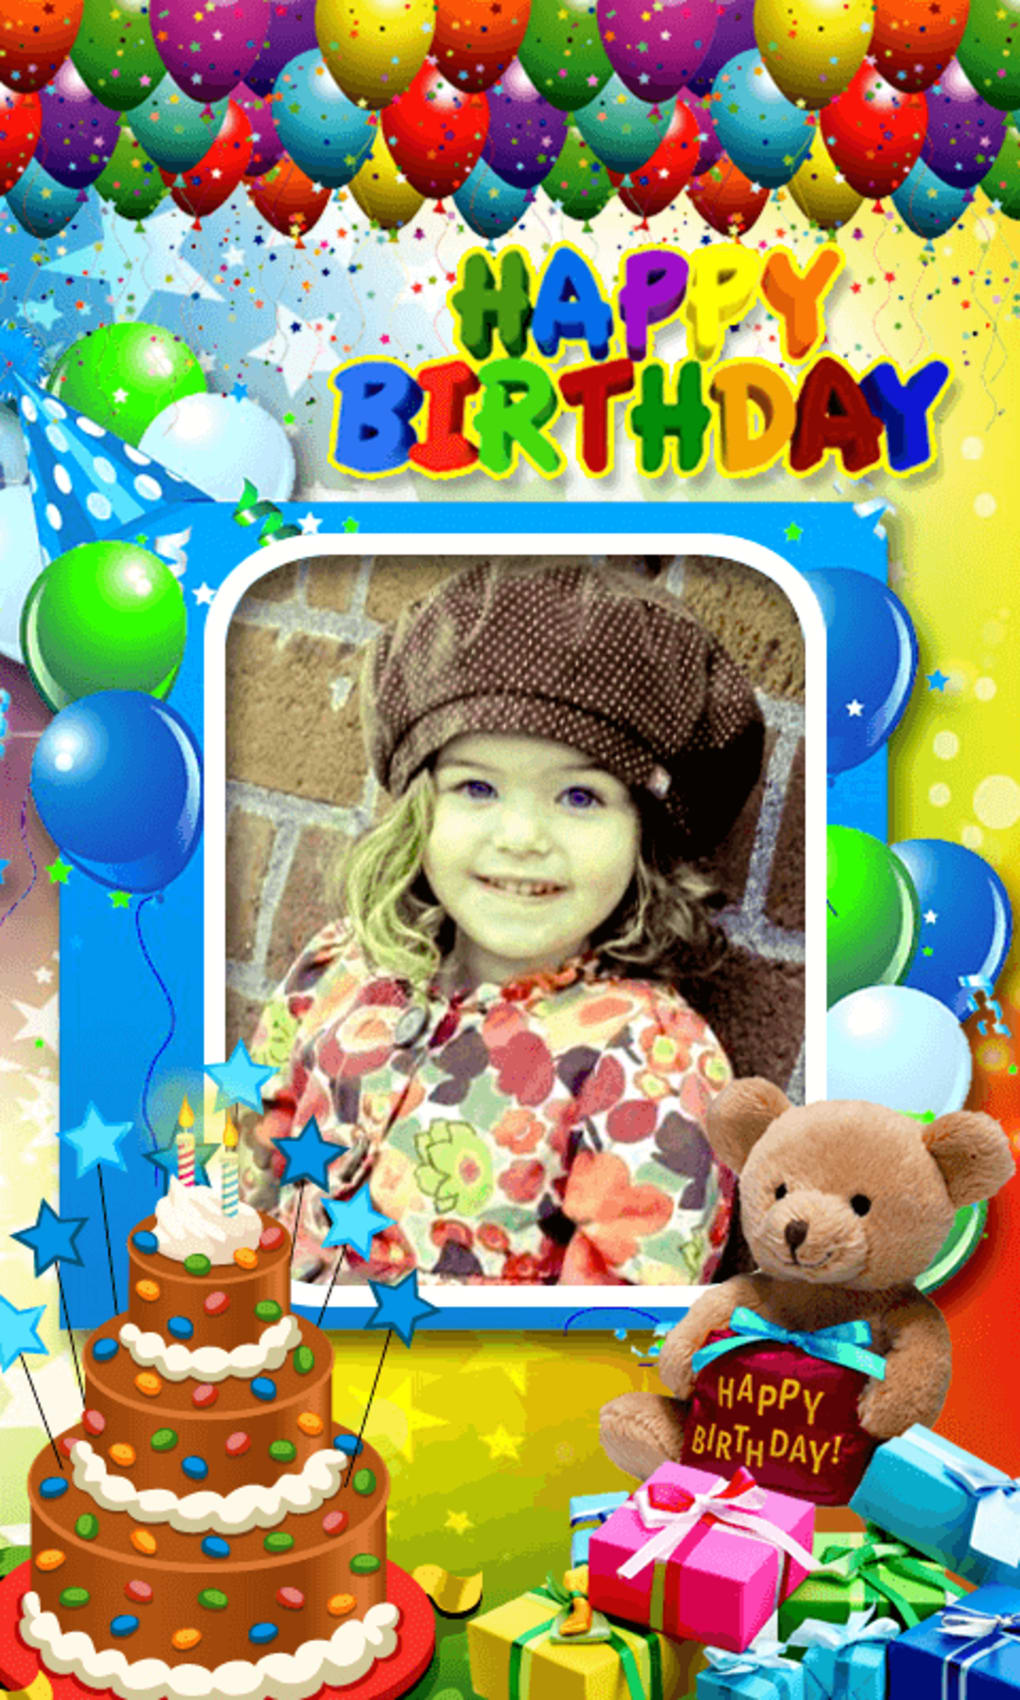 Birthday Photo Frames New for Android - Download